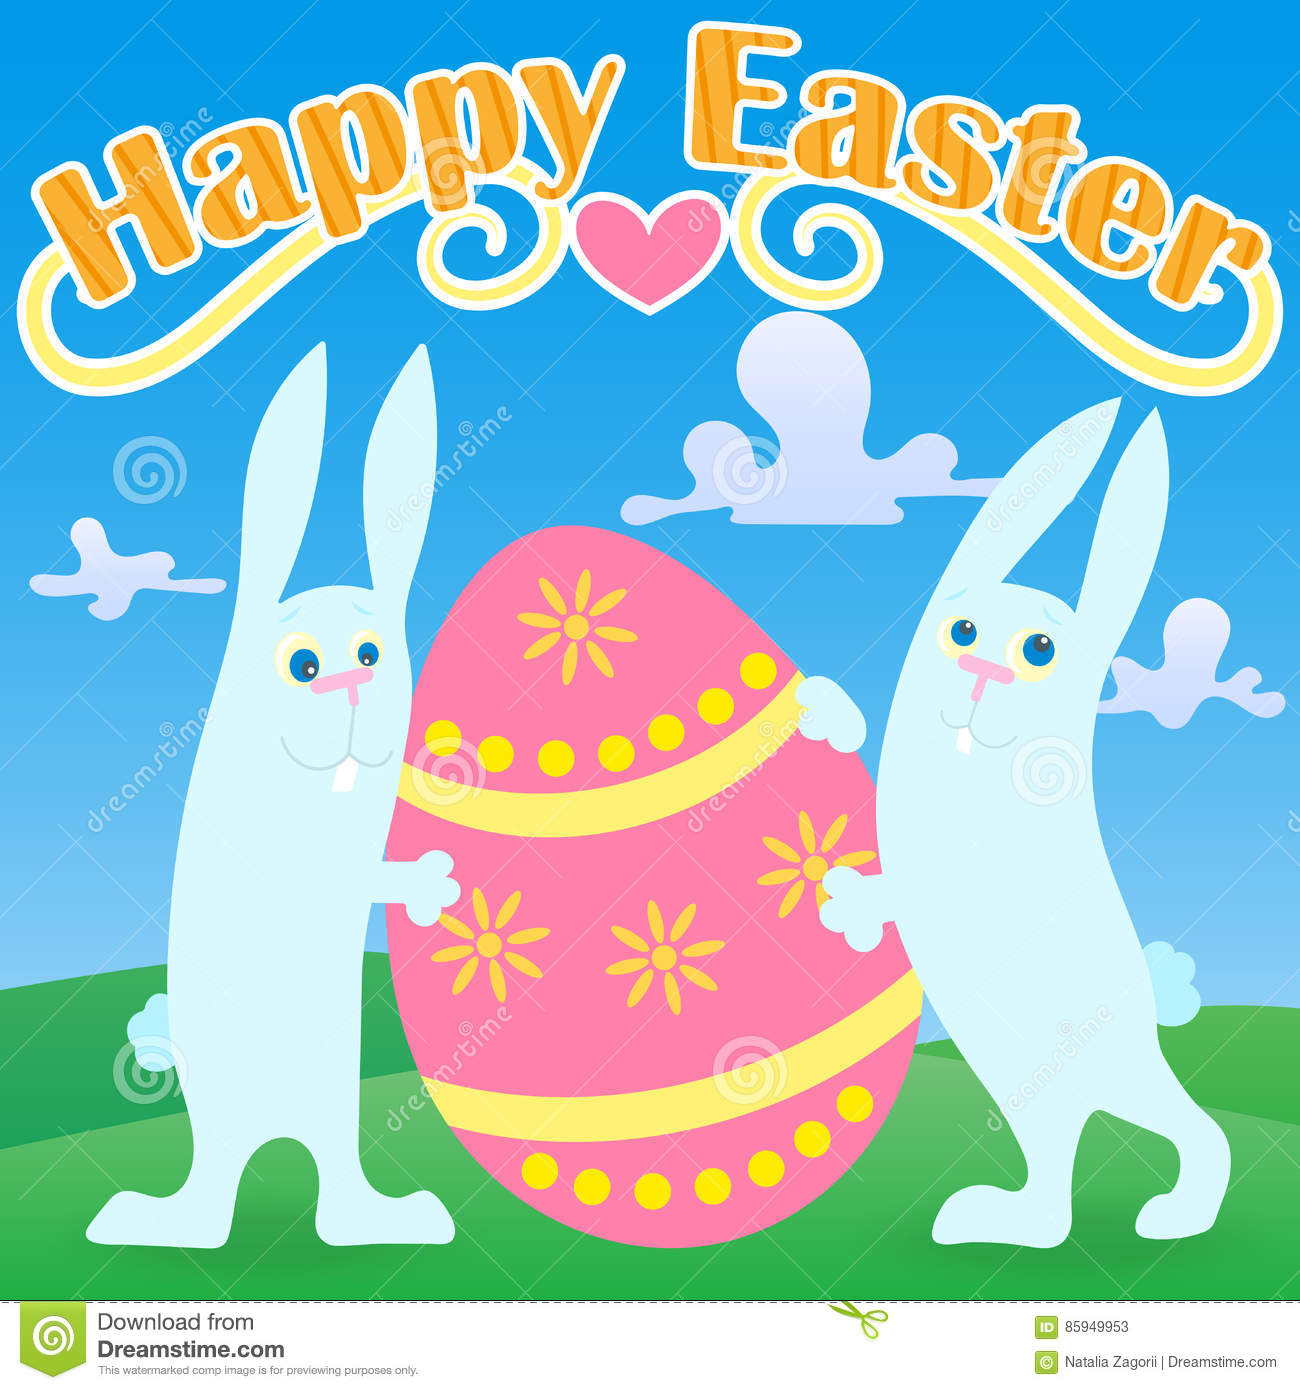 Greeting card to the day of easter two funny cartoon easter bunny download greeting card to the day of easter two funny cartoon easter bunny carrying a m4hsunfo